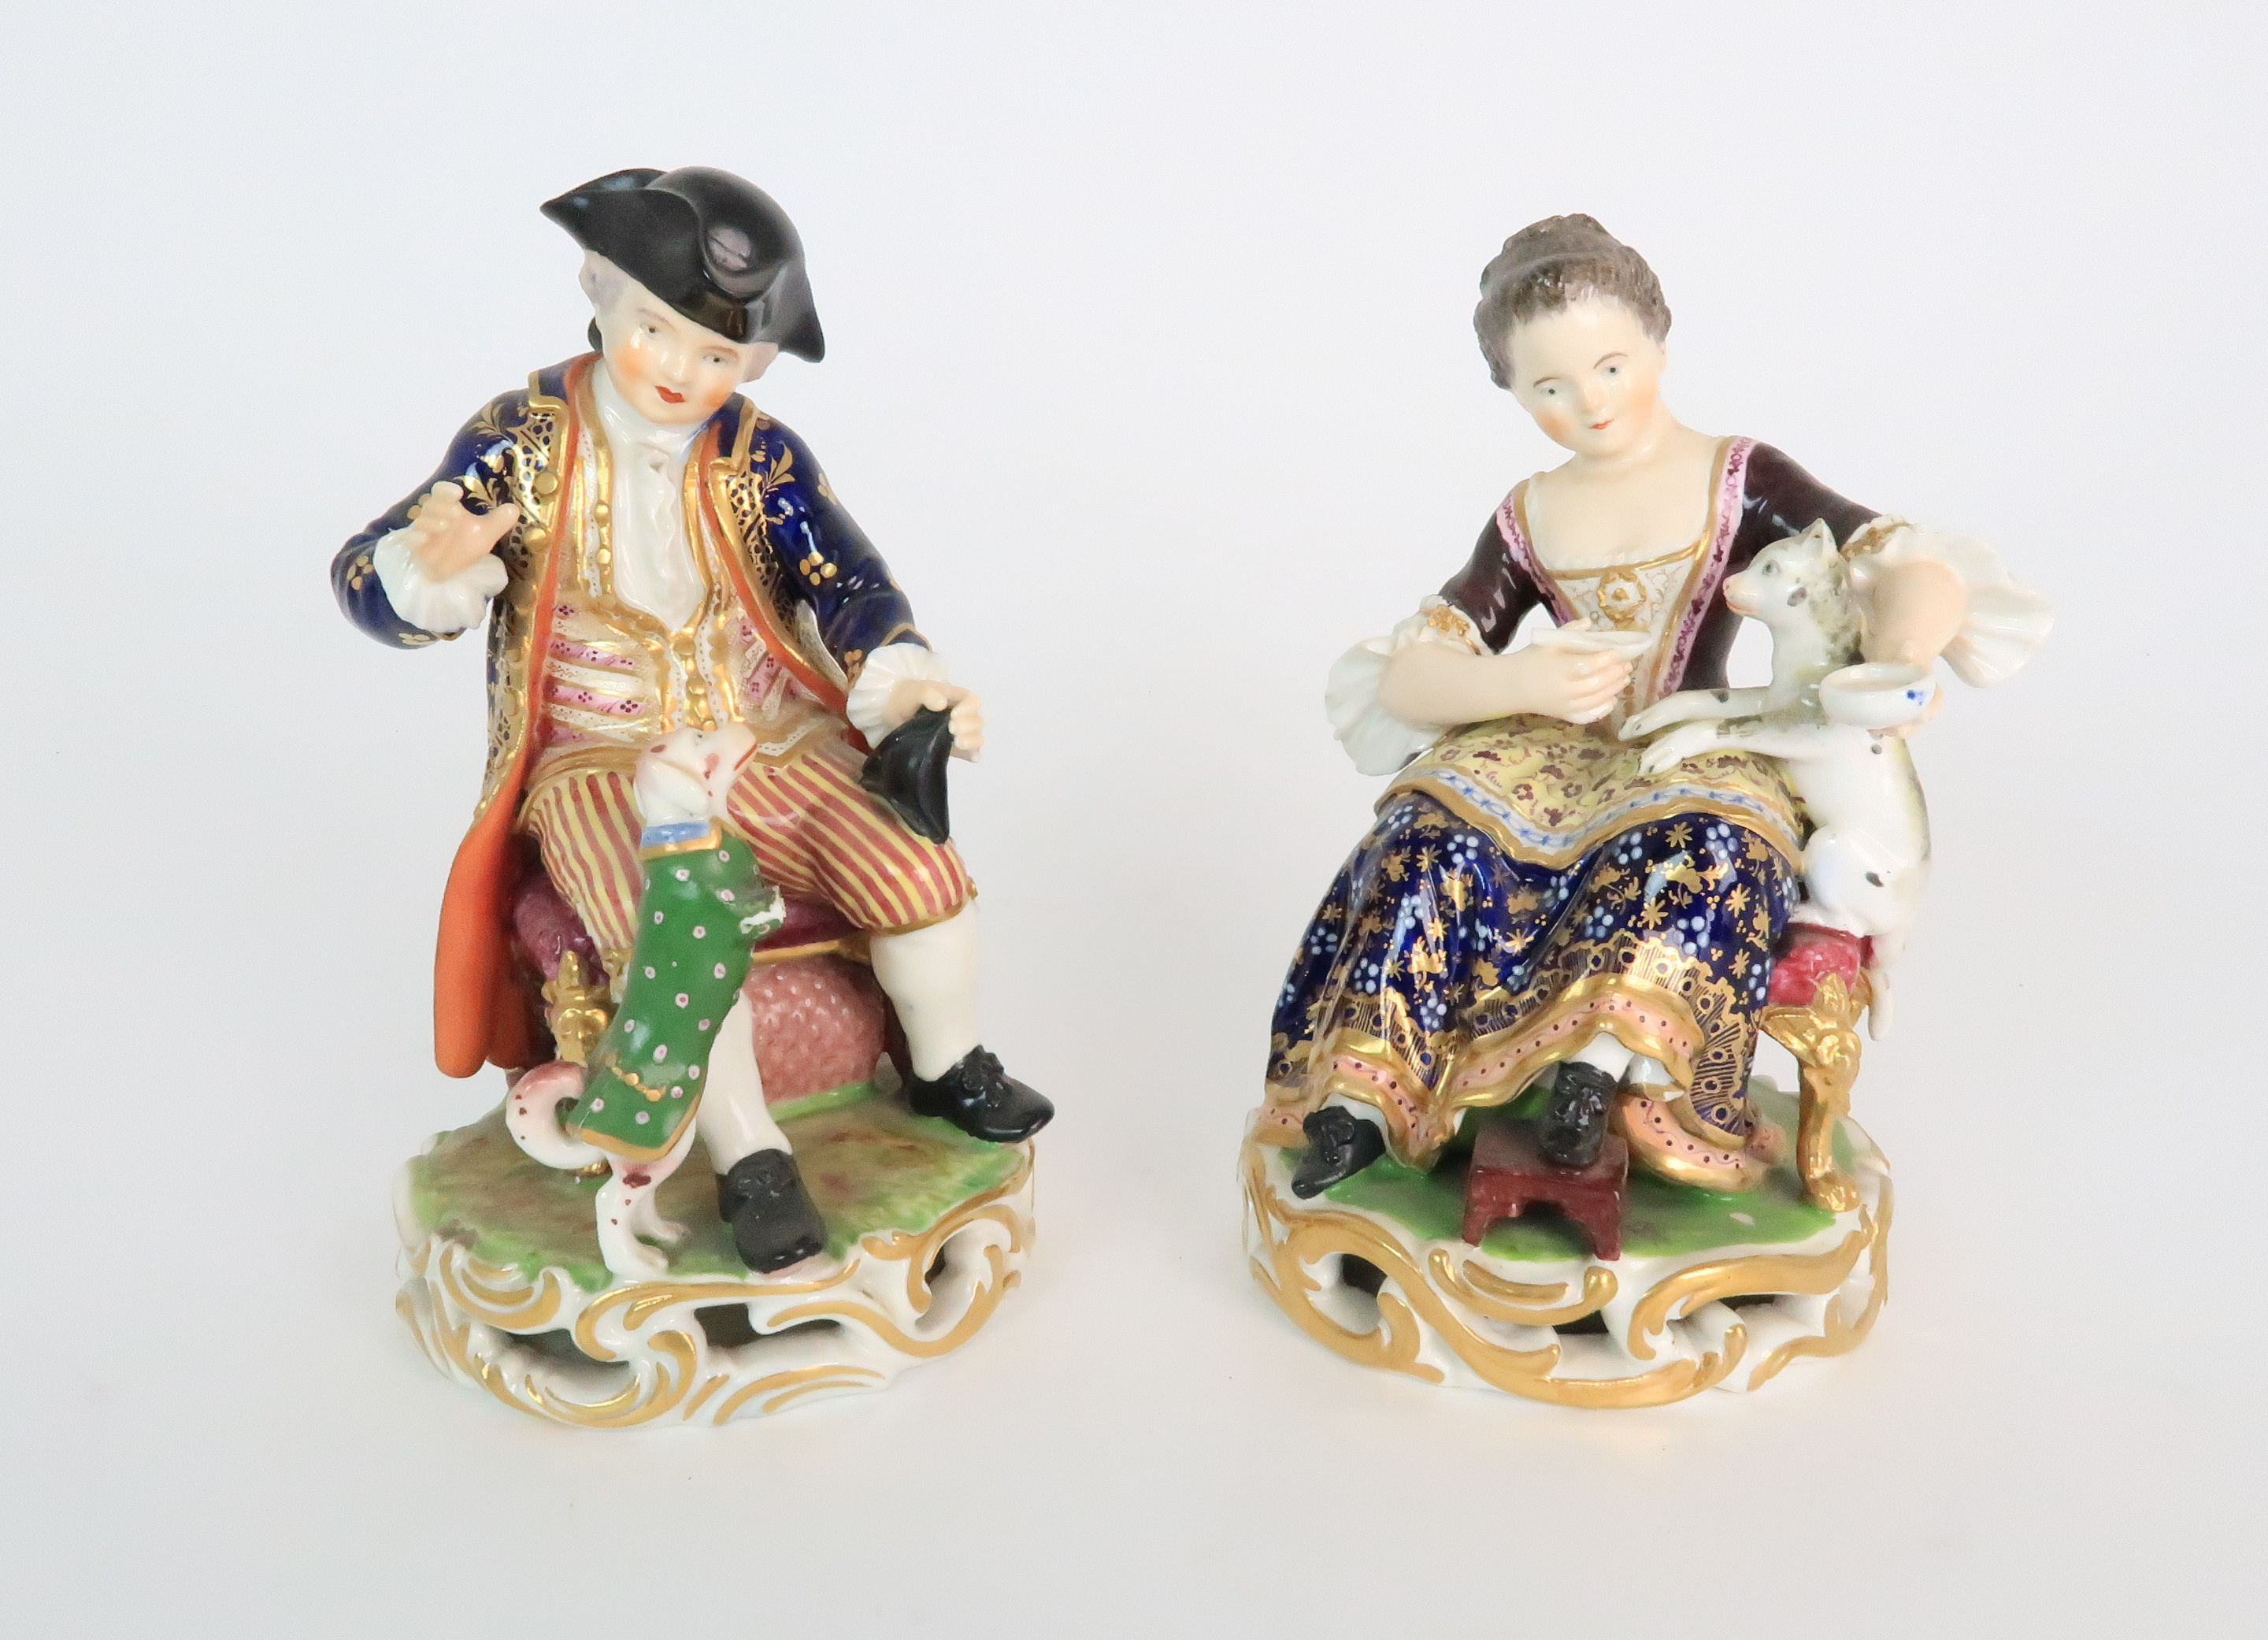 A PAIR OF DERBY PORCELAIN FIGURES early 19th century, modelled as a seated boy playing with a dog